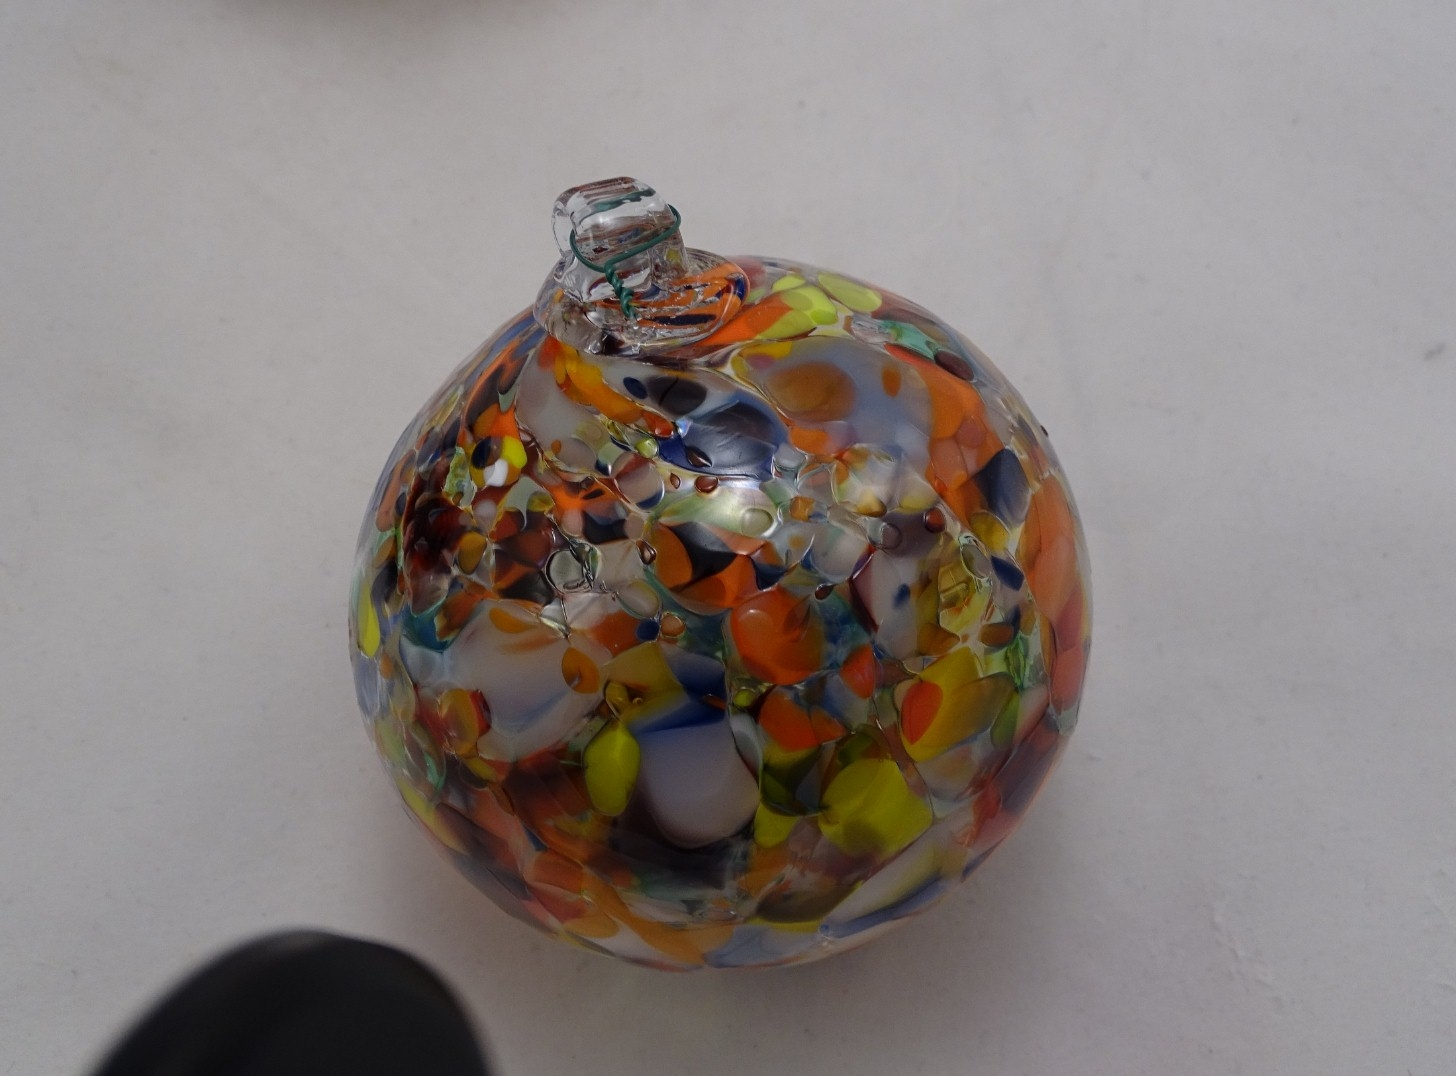 Colorfull Christmas tree ornament